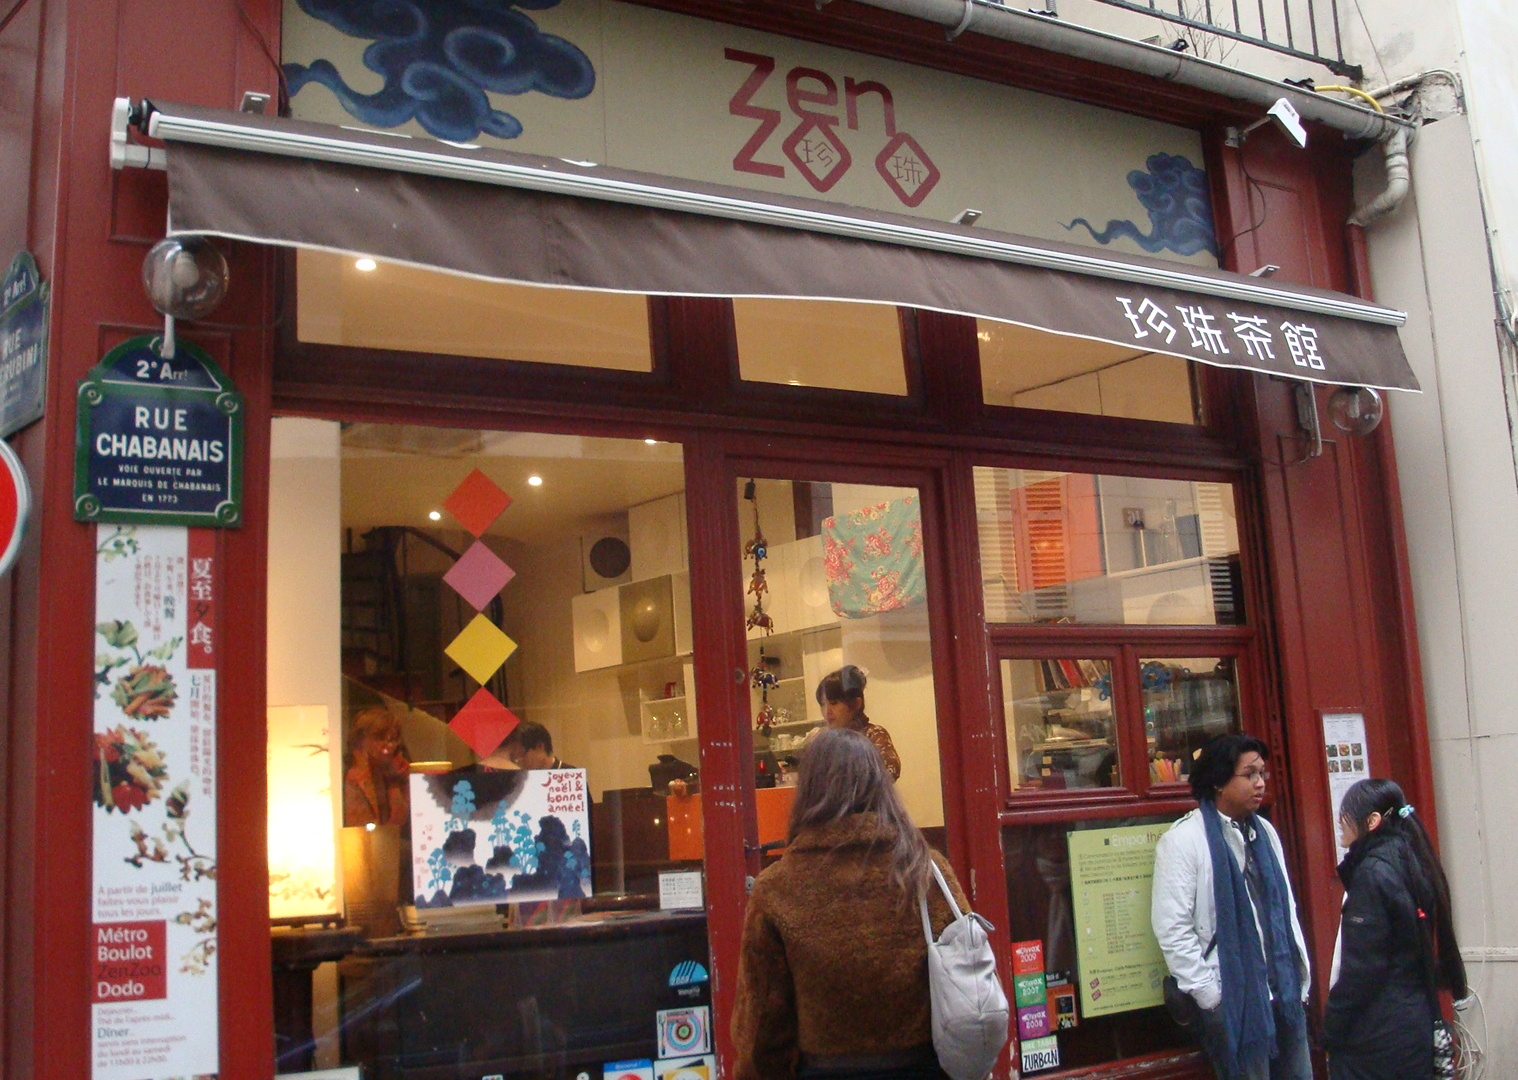 zenzoo restaurant taiwanais stouring in france. Black Bedroom Furniture Sets. Home Design Ideas